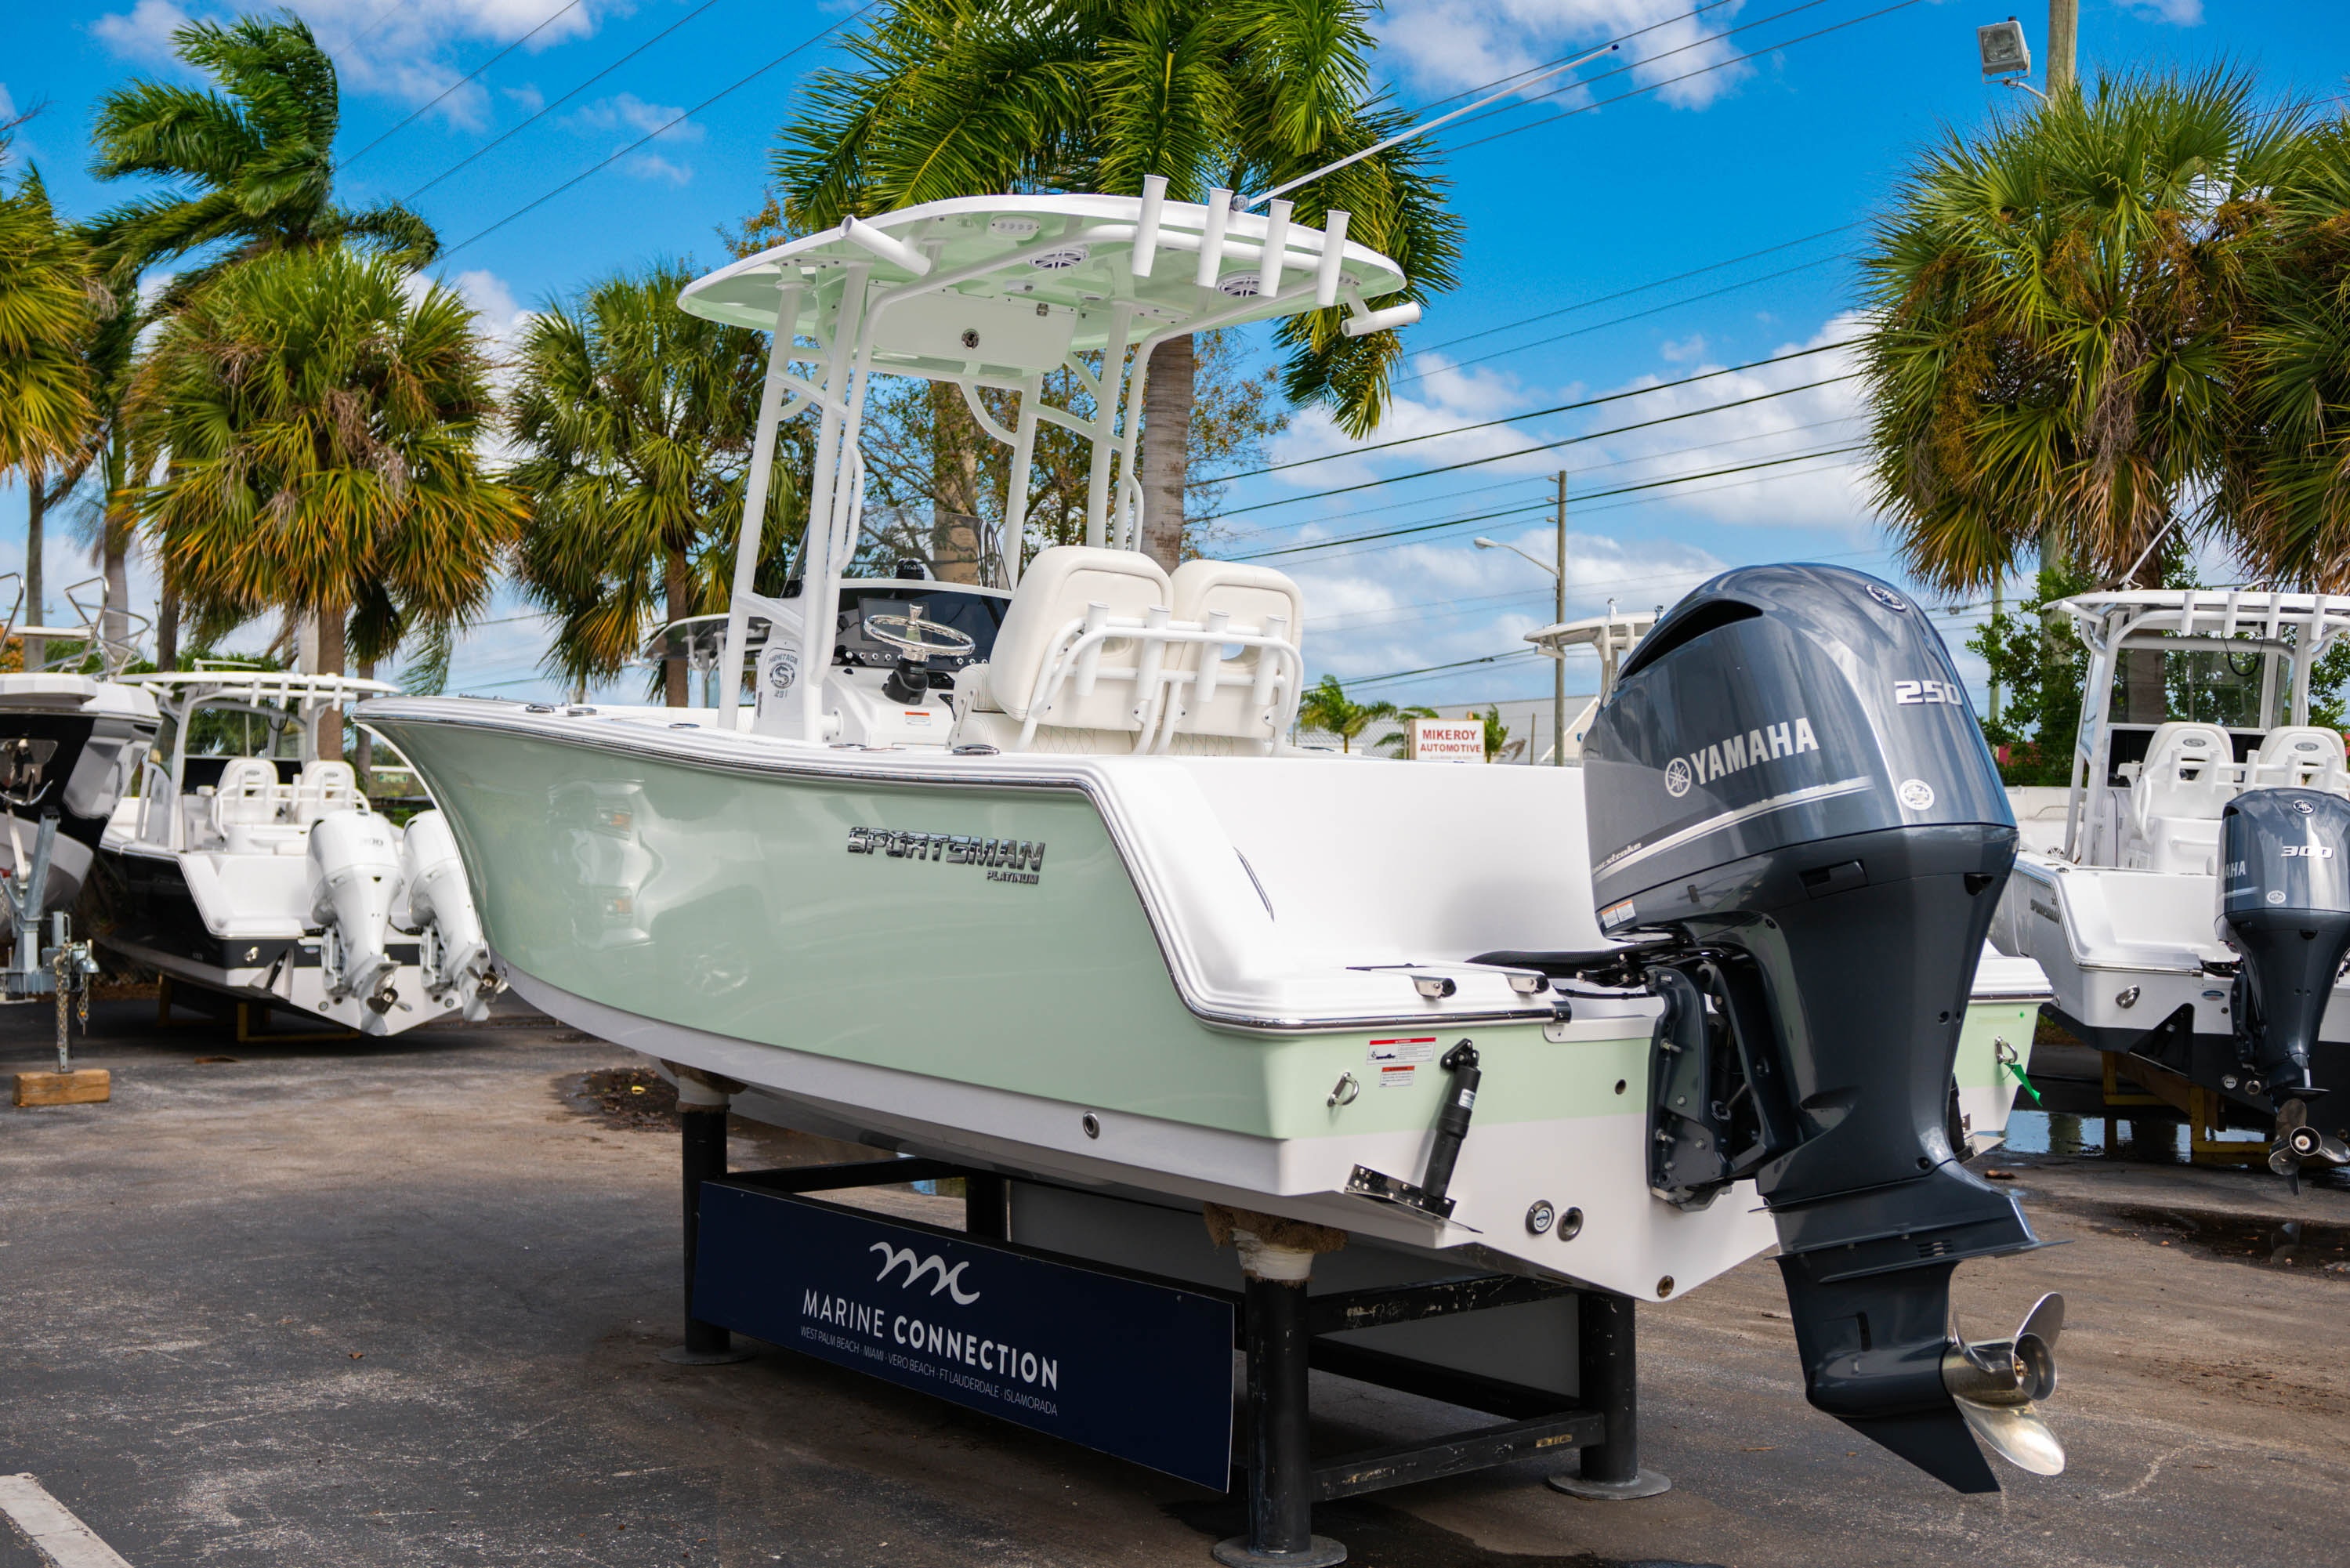 Thumbnail 5 for New 2020 Sportsman Heritage 231 Center Console boat for sale in West Palm Beach, FL